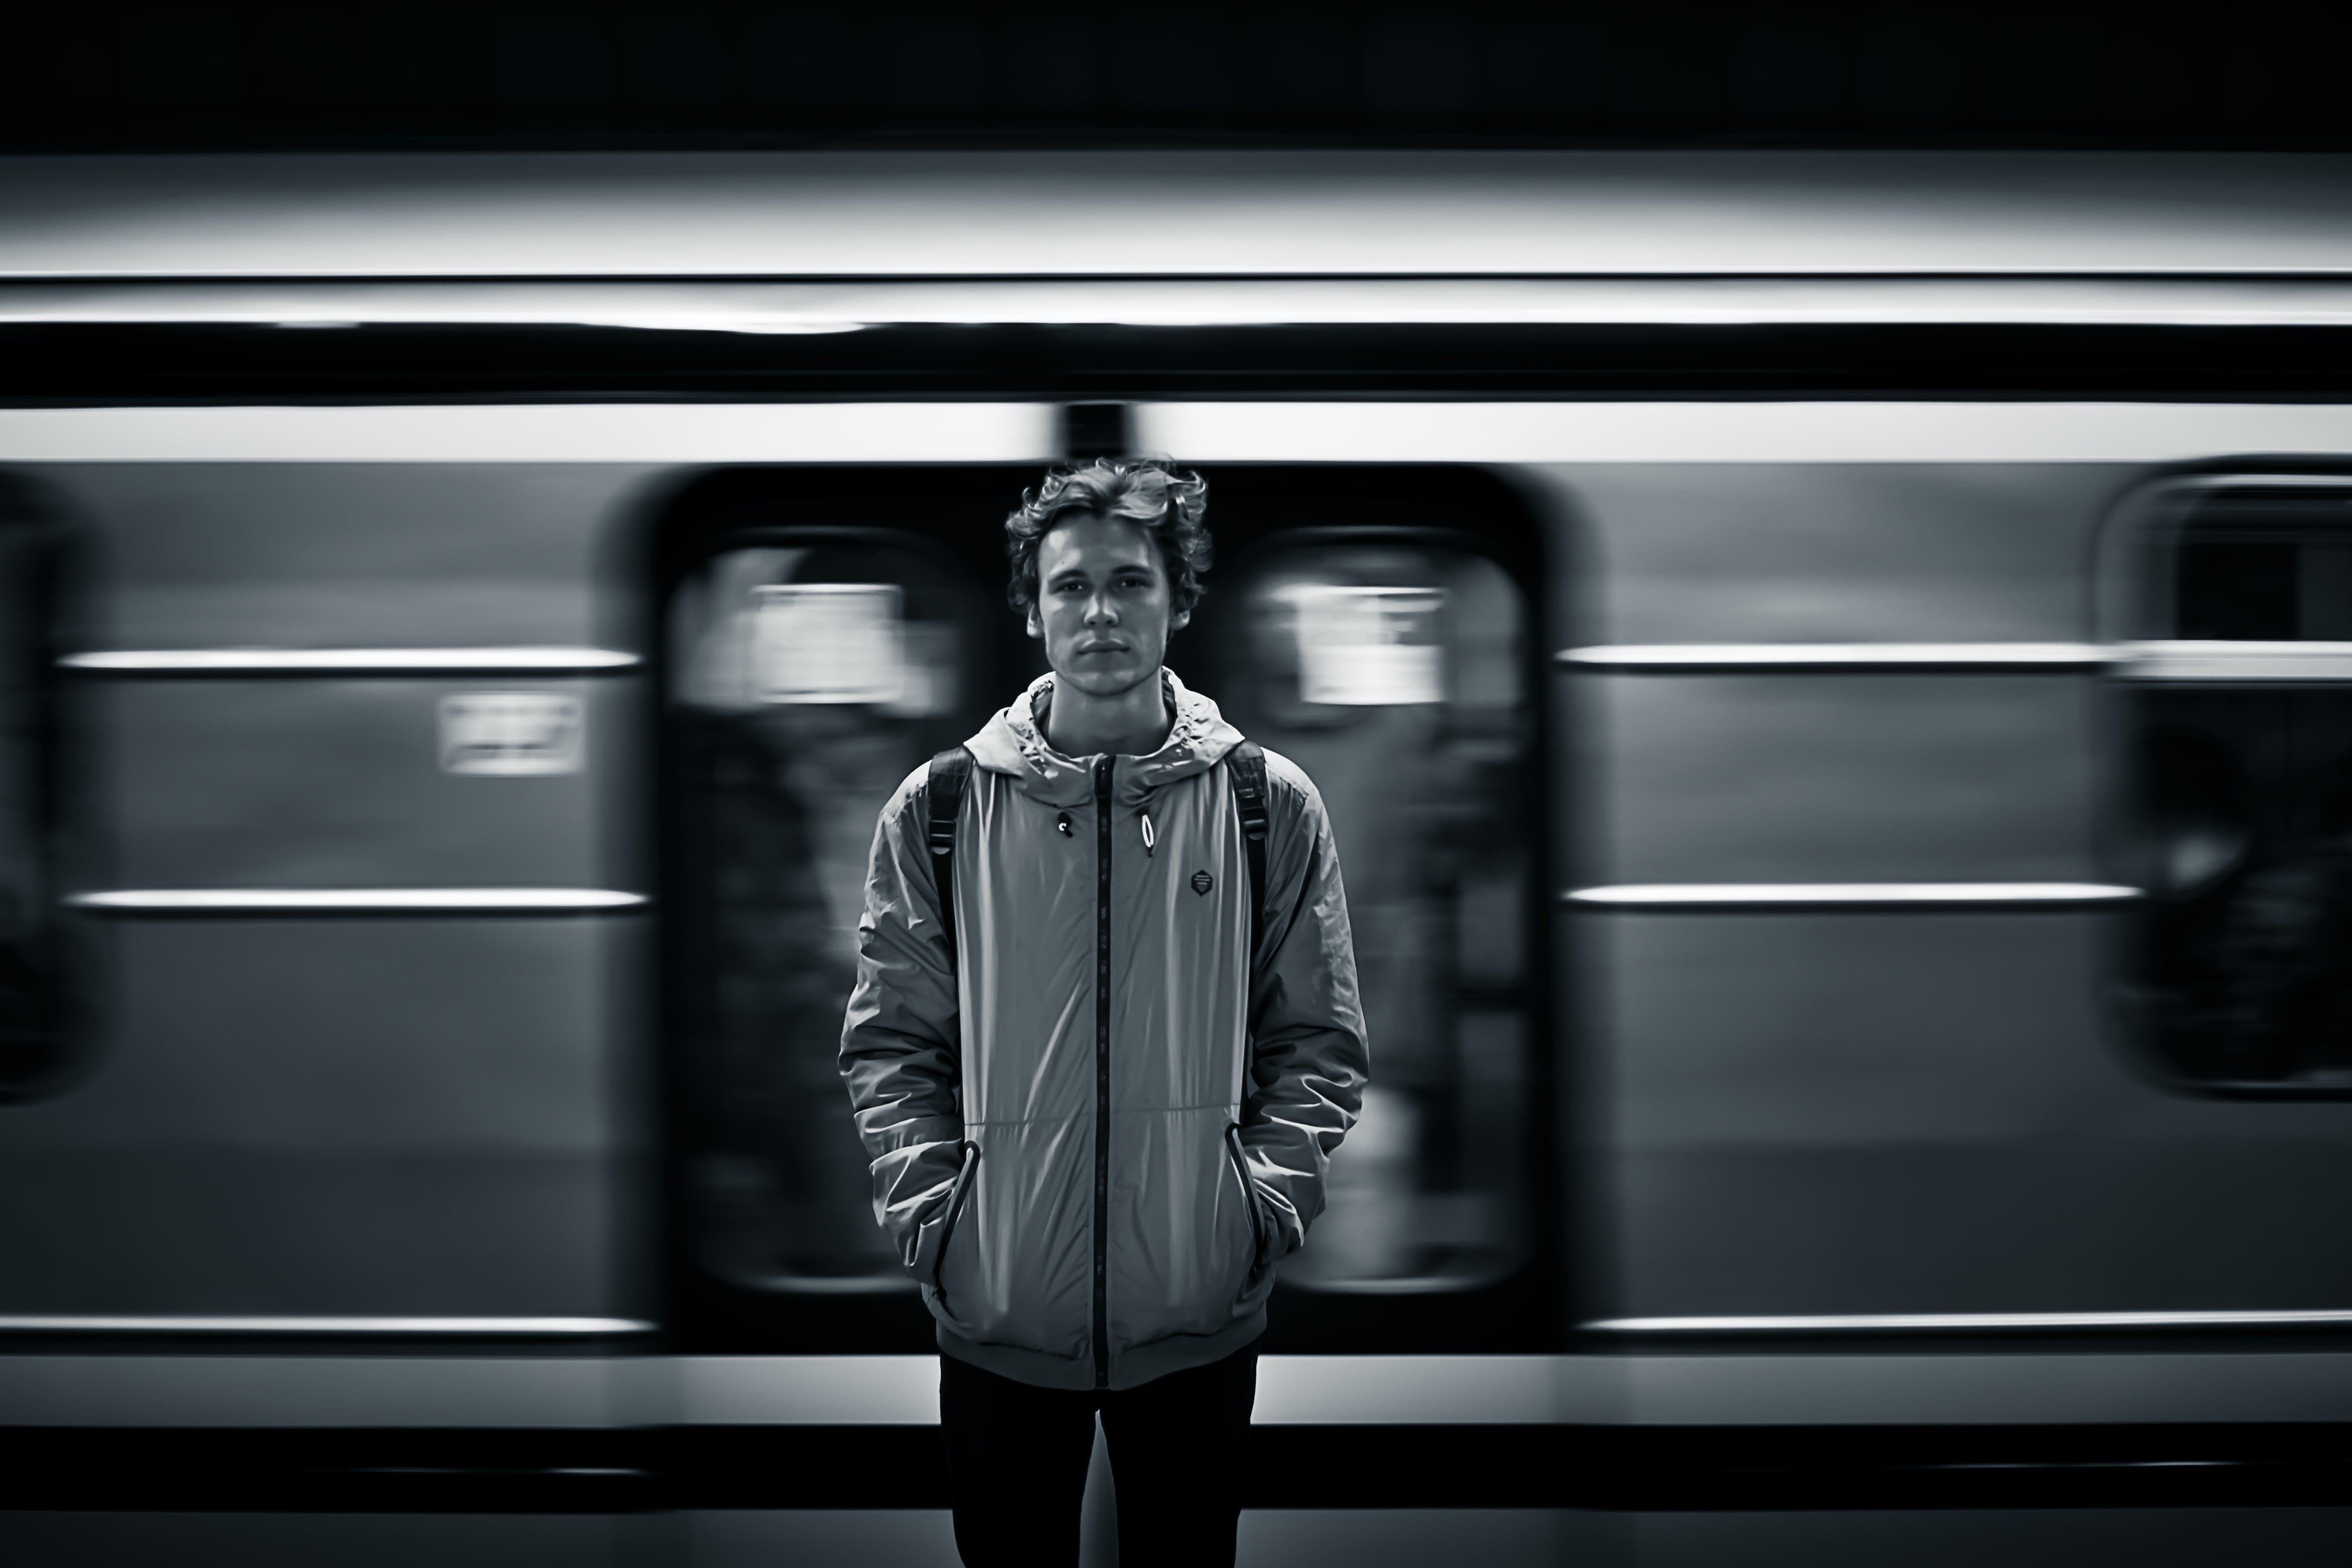 Man Wearing Windbreaker Jacket Standing on Train Station Grayscale Photography